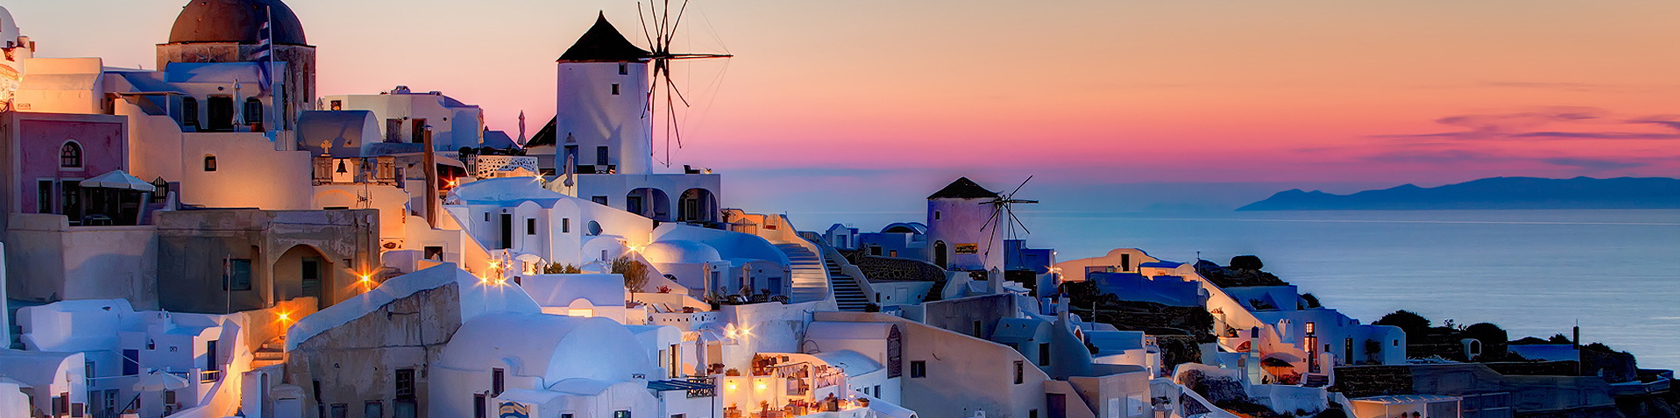 Greece Tour Package Nights Days Memory Maker Holiday - Greece tour packages